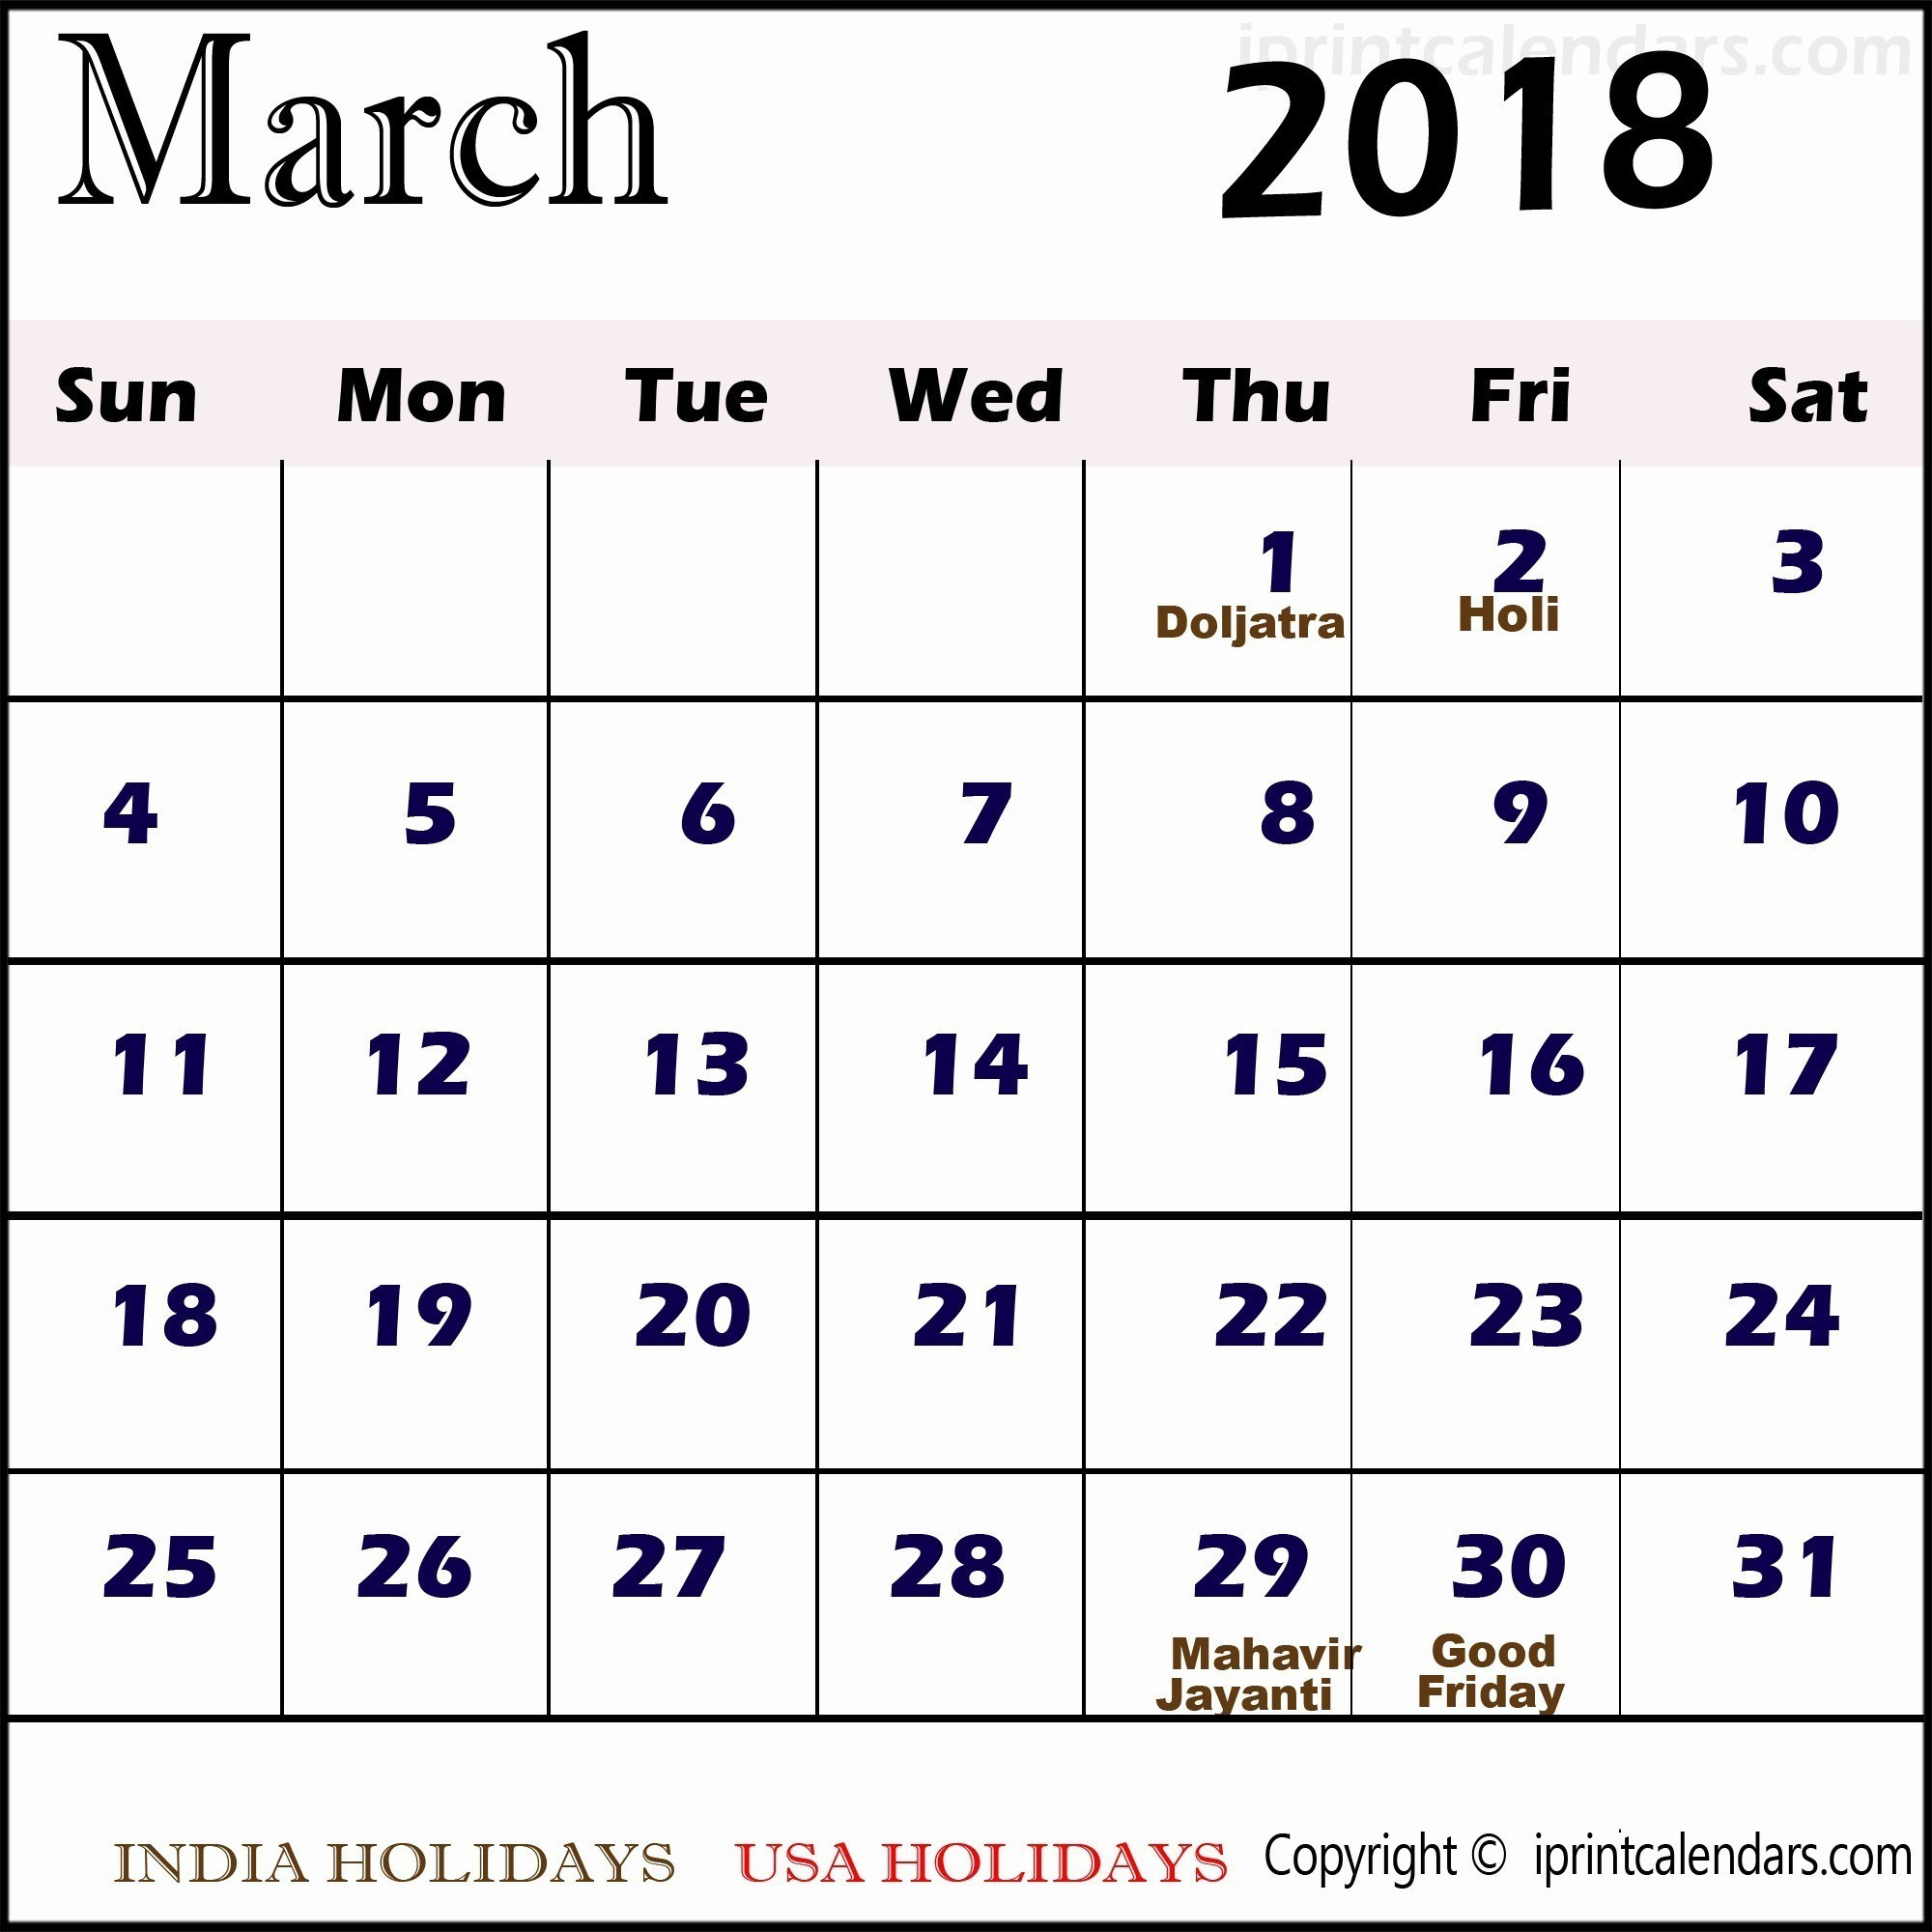 March Calendar Blank 2019 Más Arriba-a-fecha 2019 Calendar Holidays Of March Calendar Blank 2019 Más Recientes Lagunitas Announces 2018 Release Calendar Willitized Coffee Stout